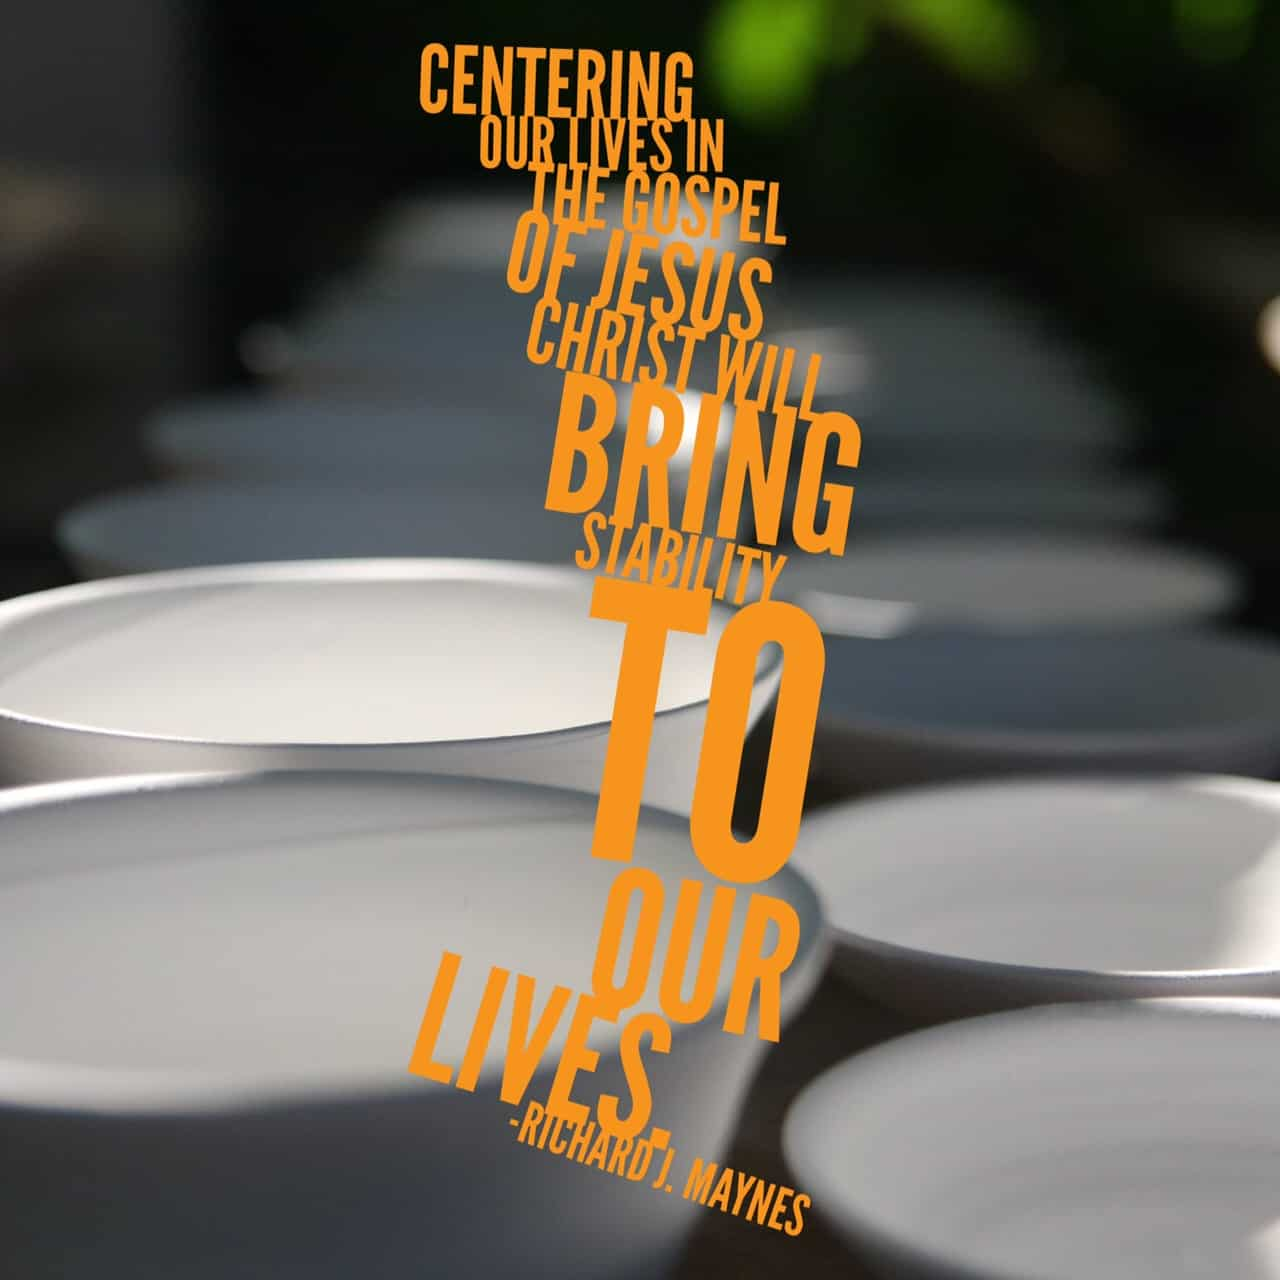 Centering our lives in the gospel of Jesus Christ will bring stability to our lives. - Richard J. Maynes